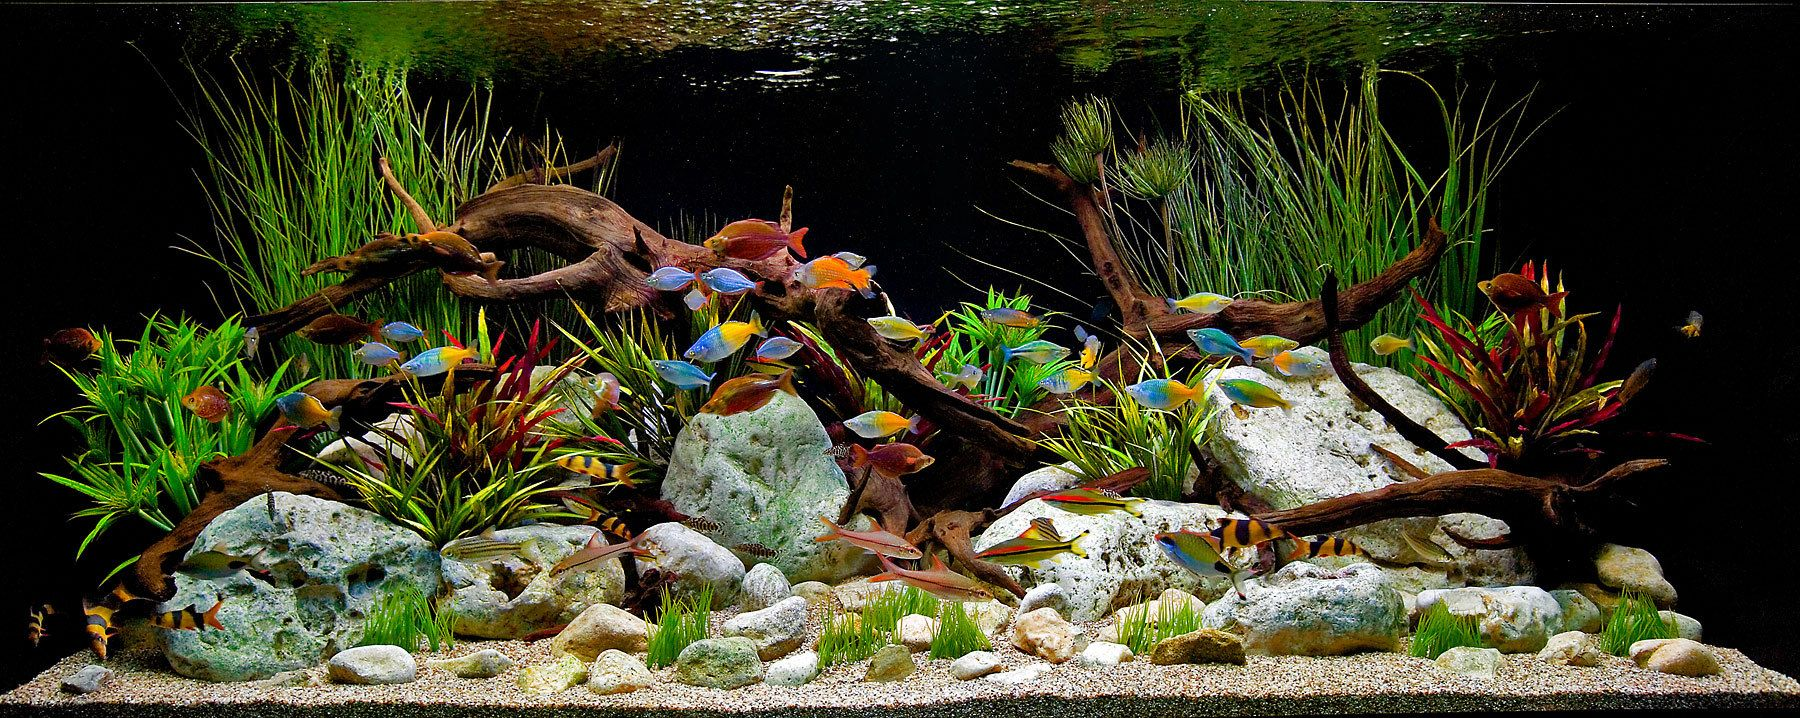 A Classic Decorative Freshwater Aquascape witrh Driftwood and Stones